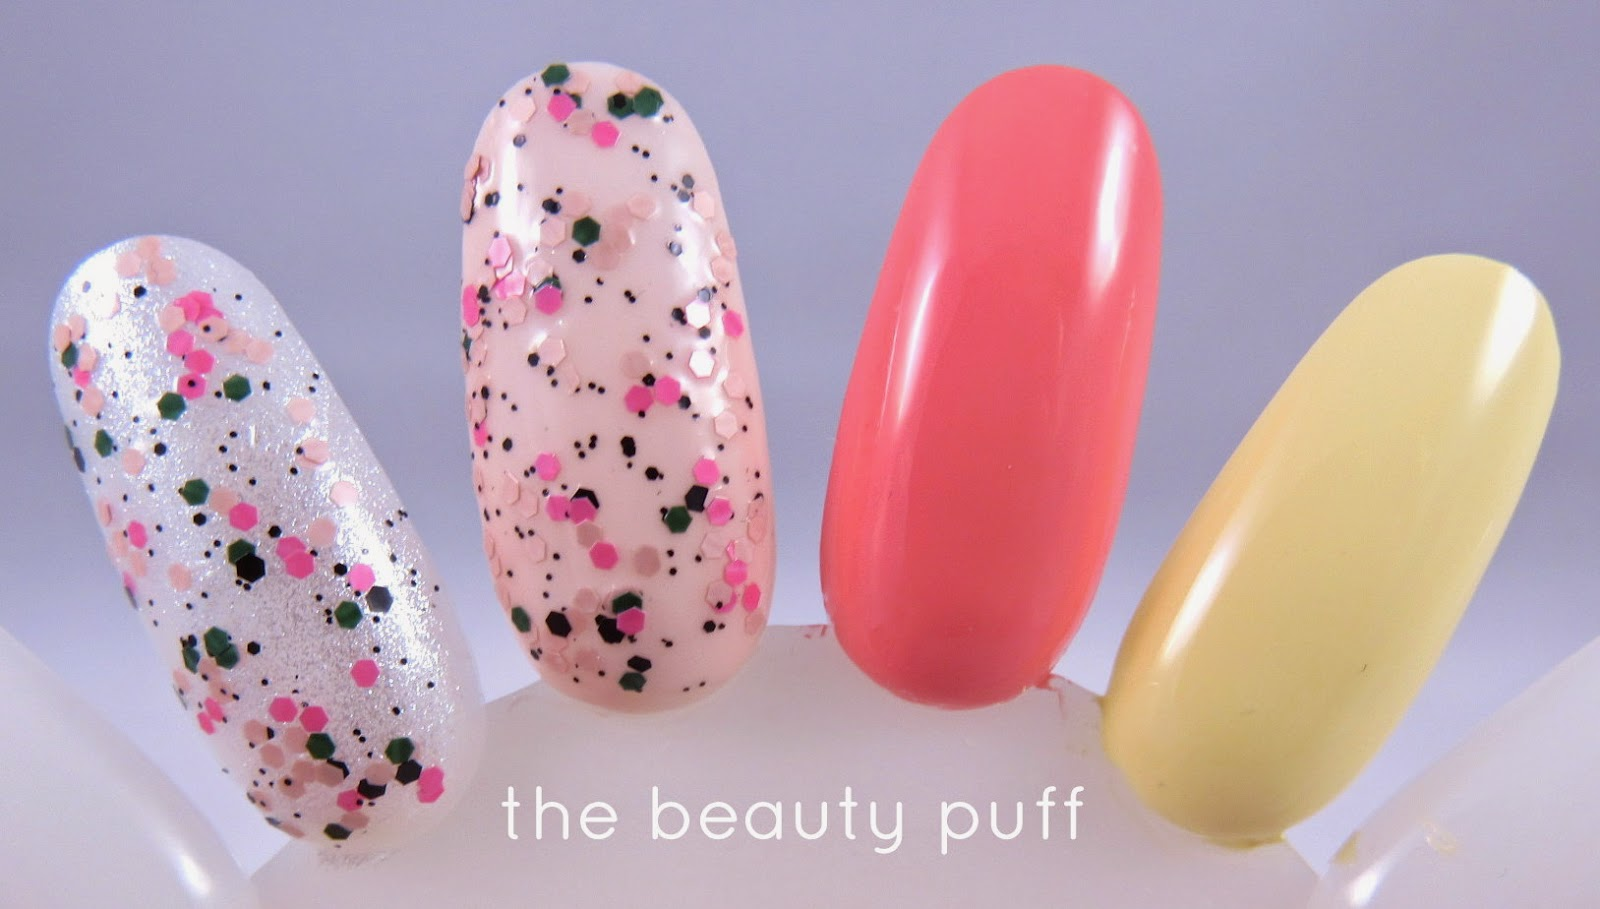 ciate rosebush butter london trout pout lvx lemondrop - the beauty puff